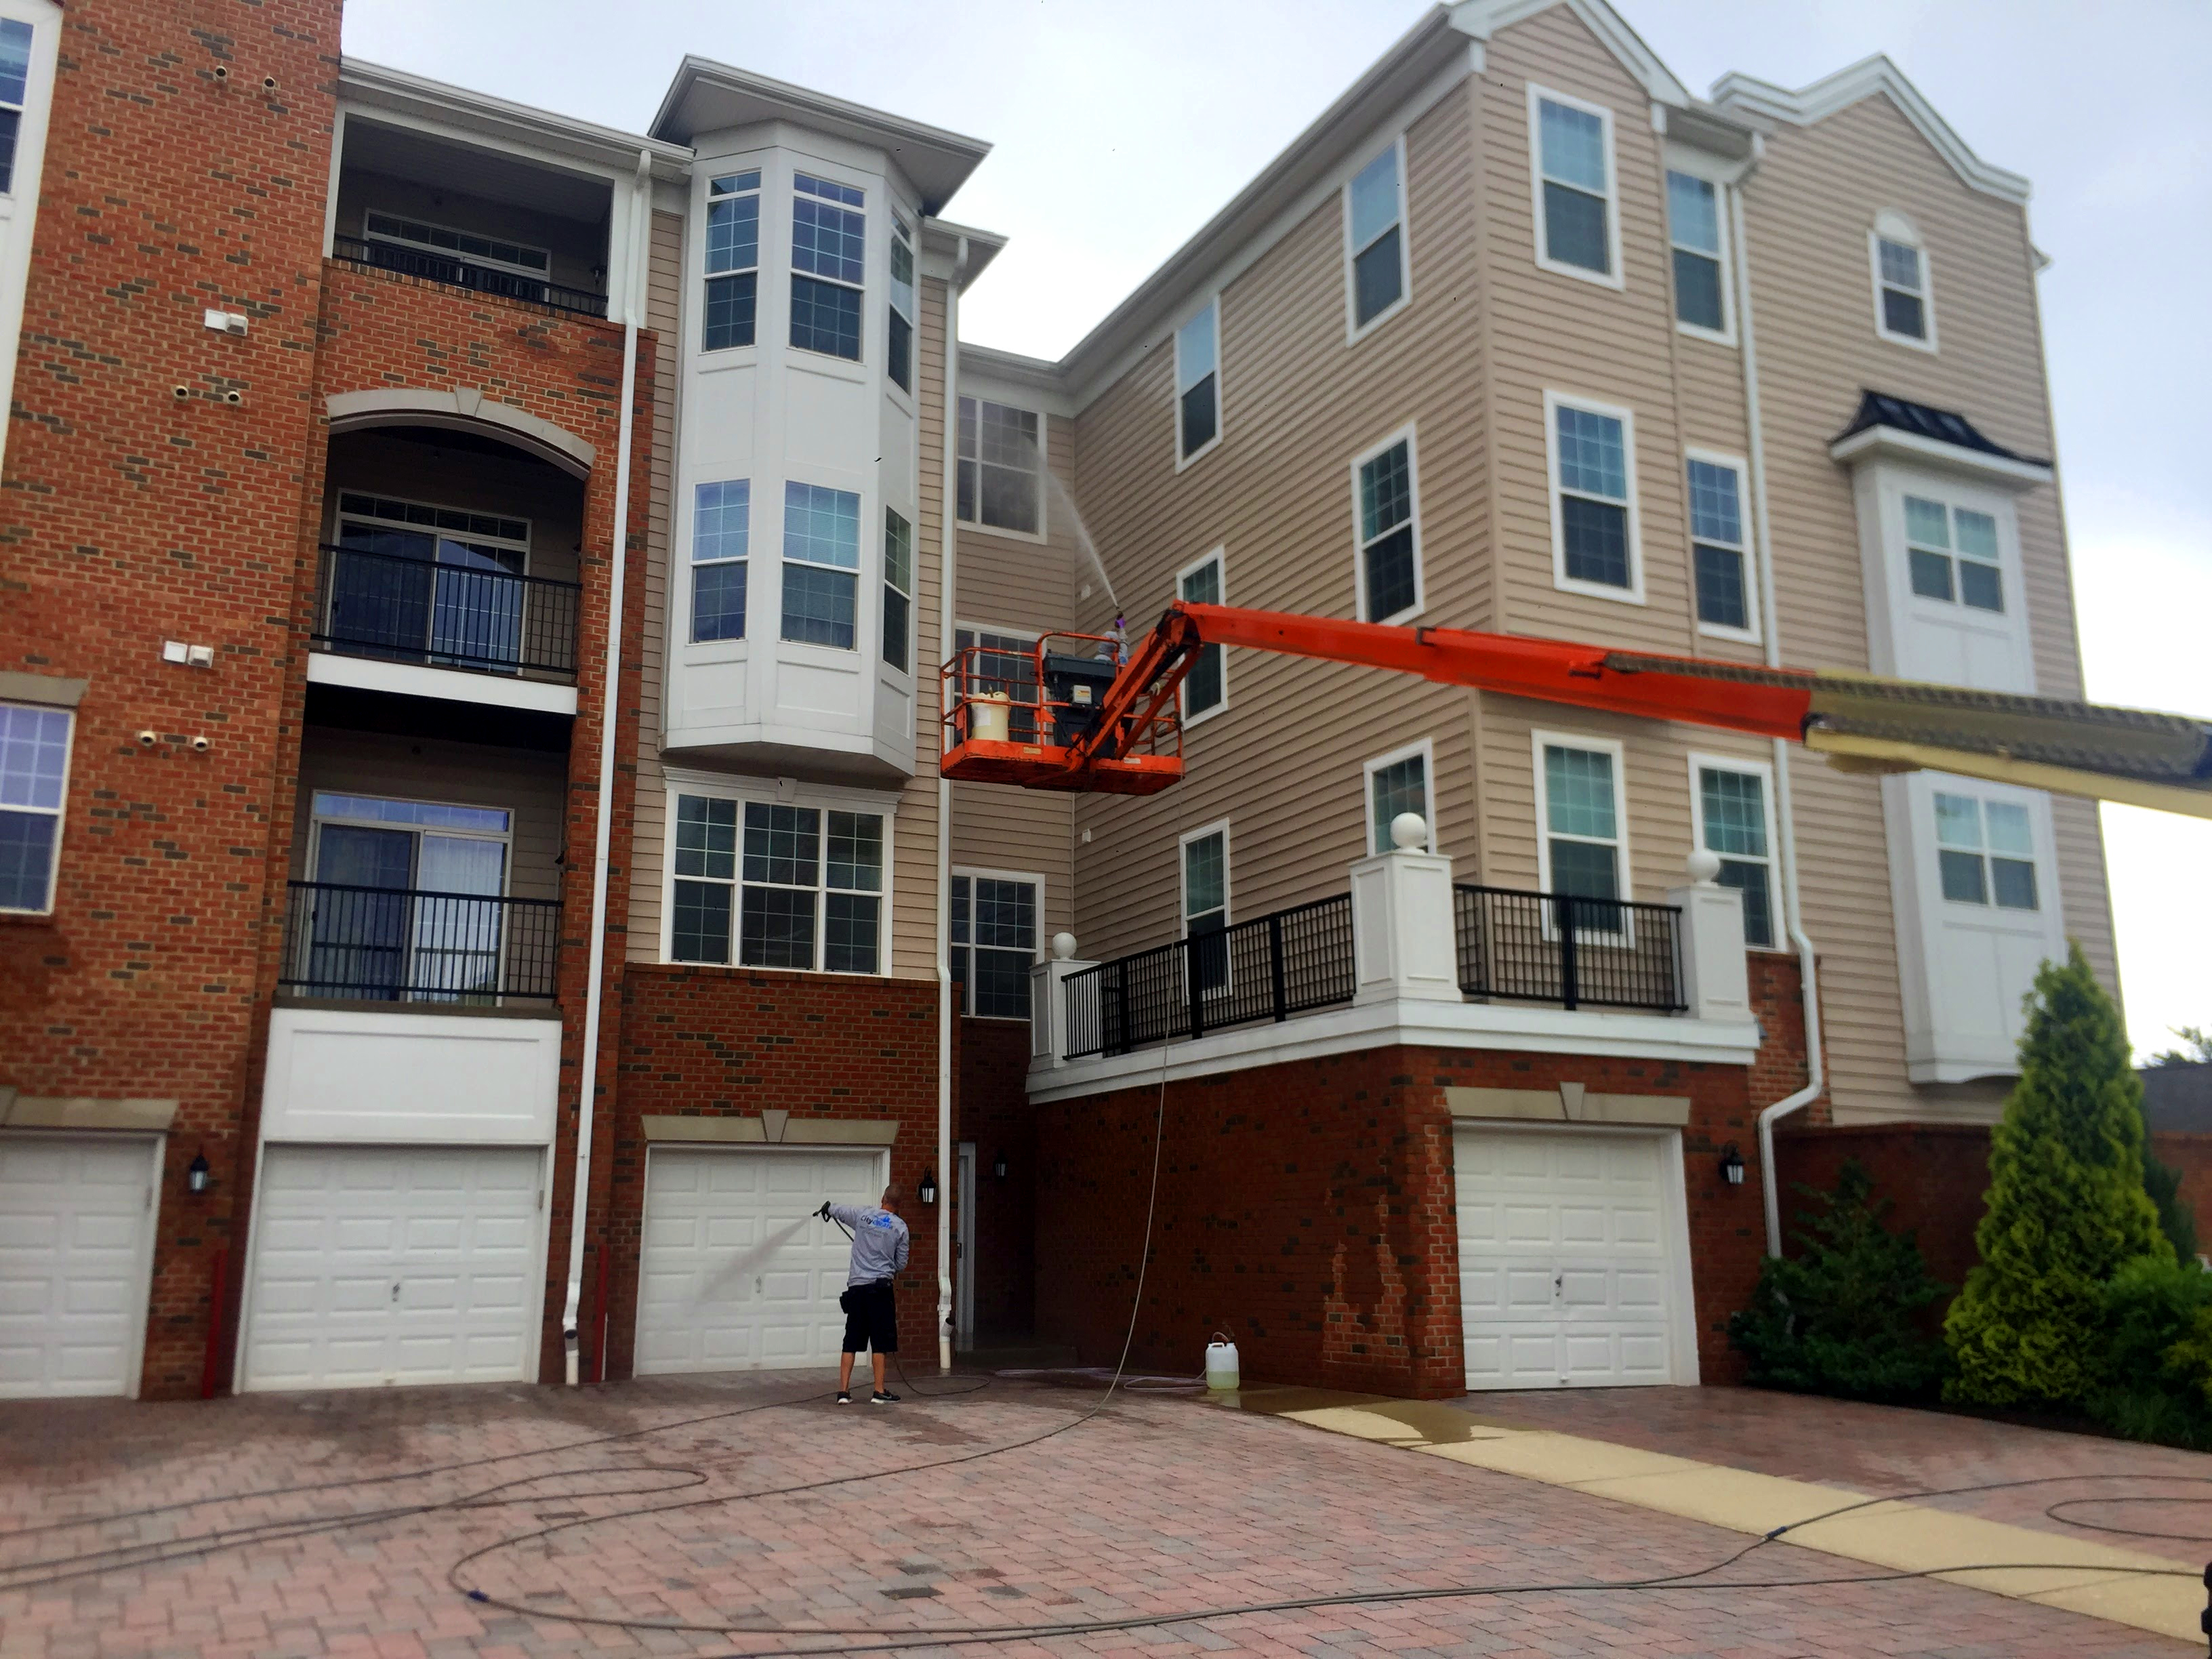 Exterior building washing in Balt, Wash DC, Annap and Central MD